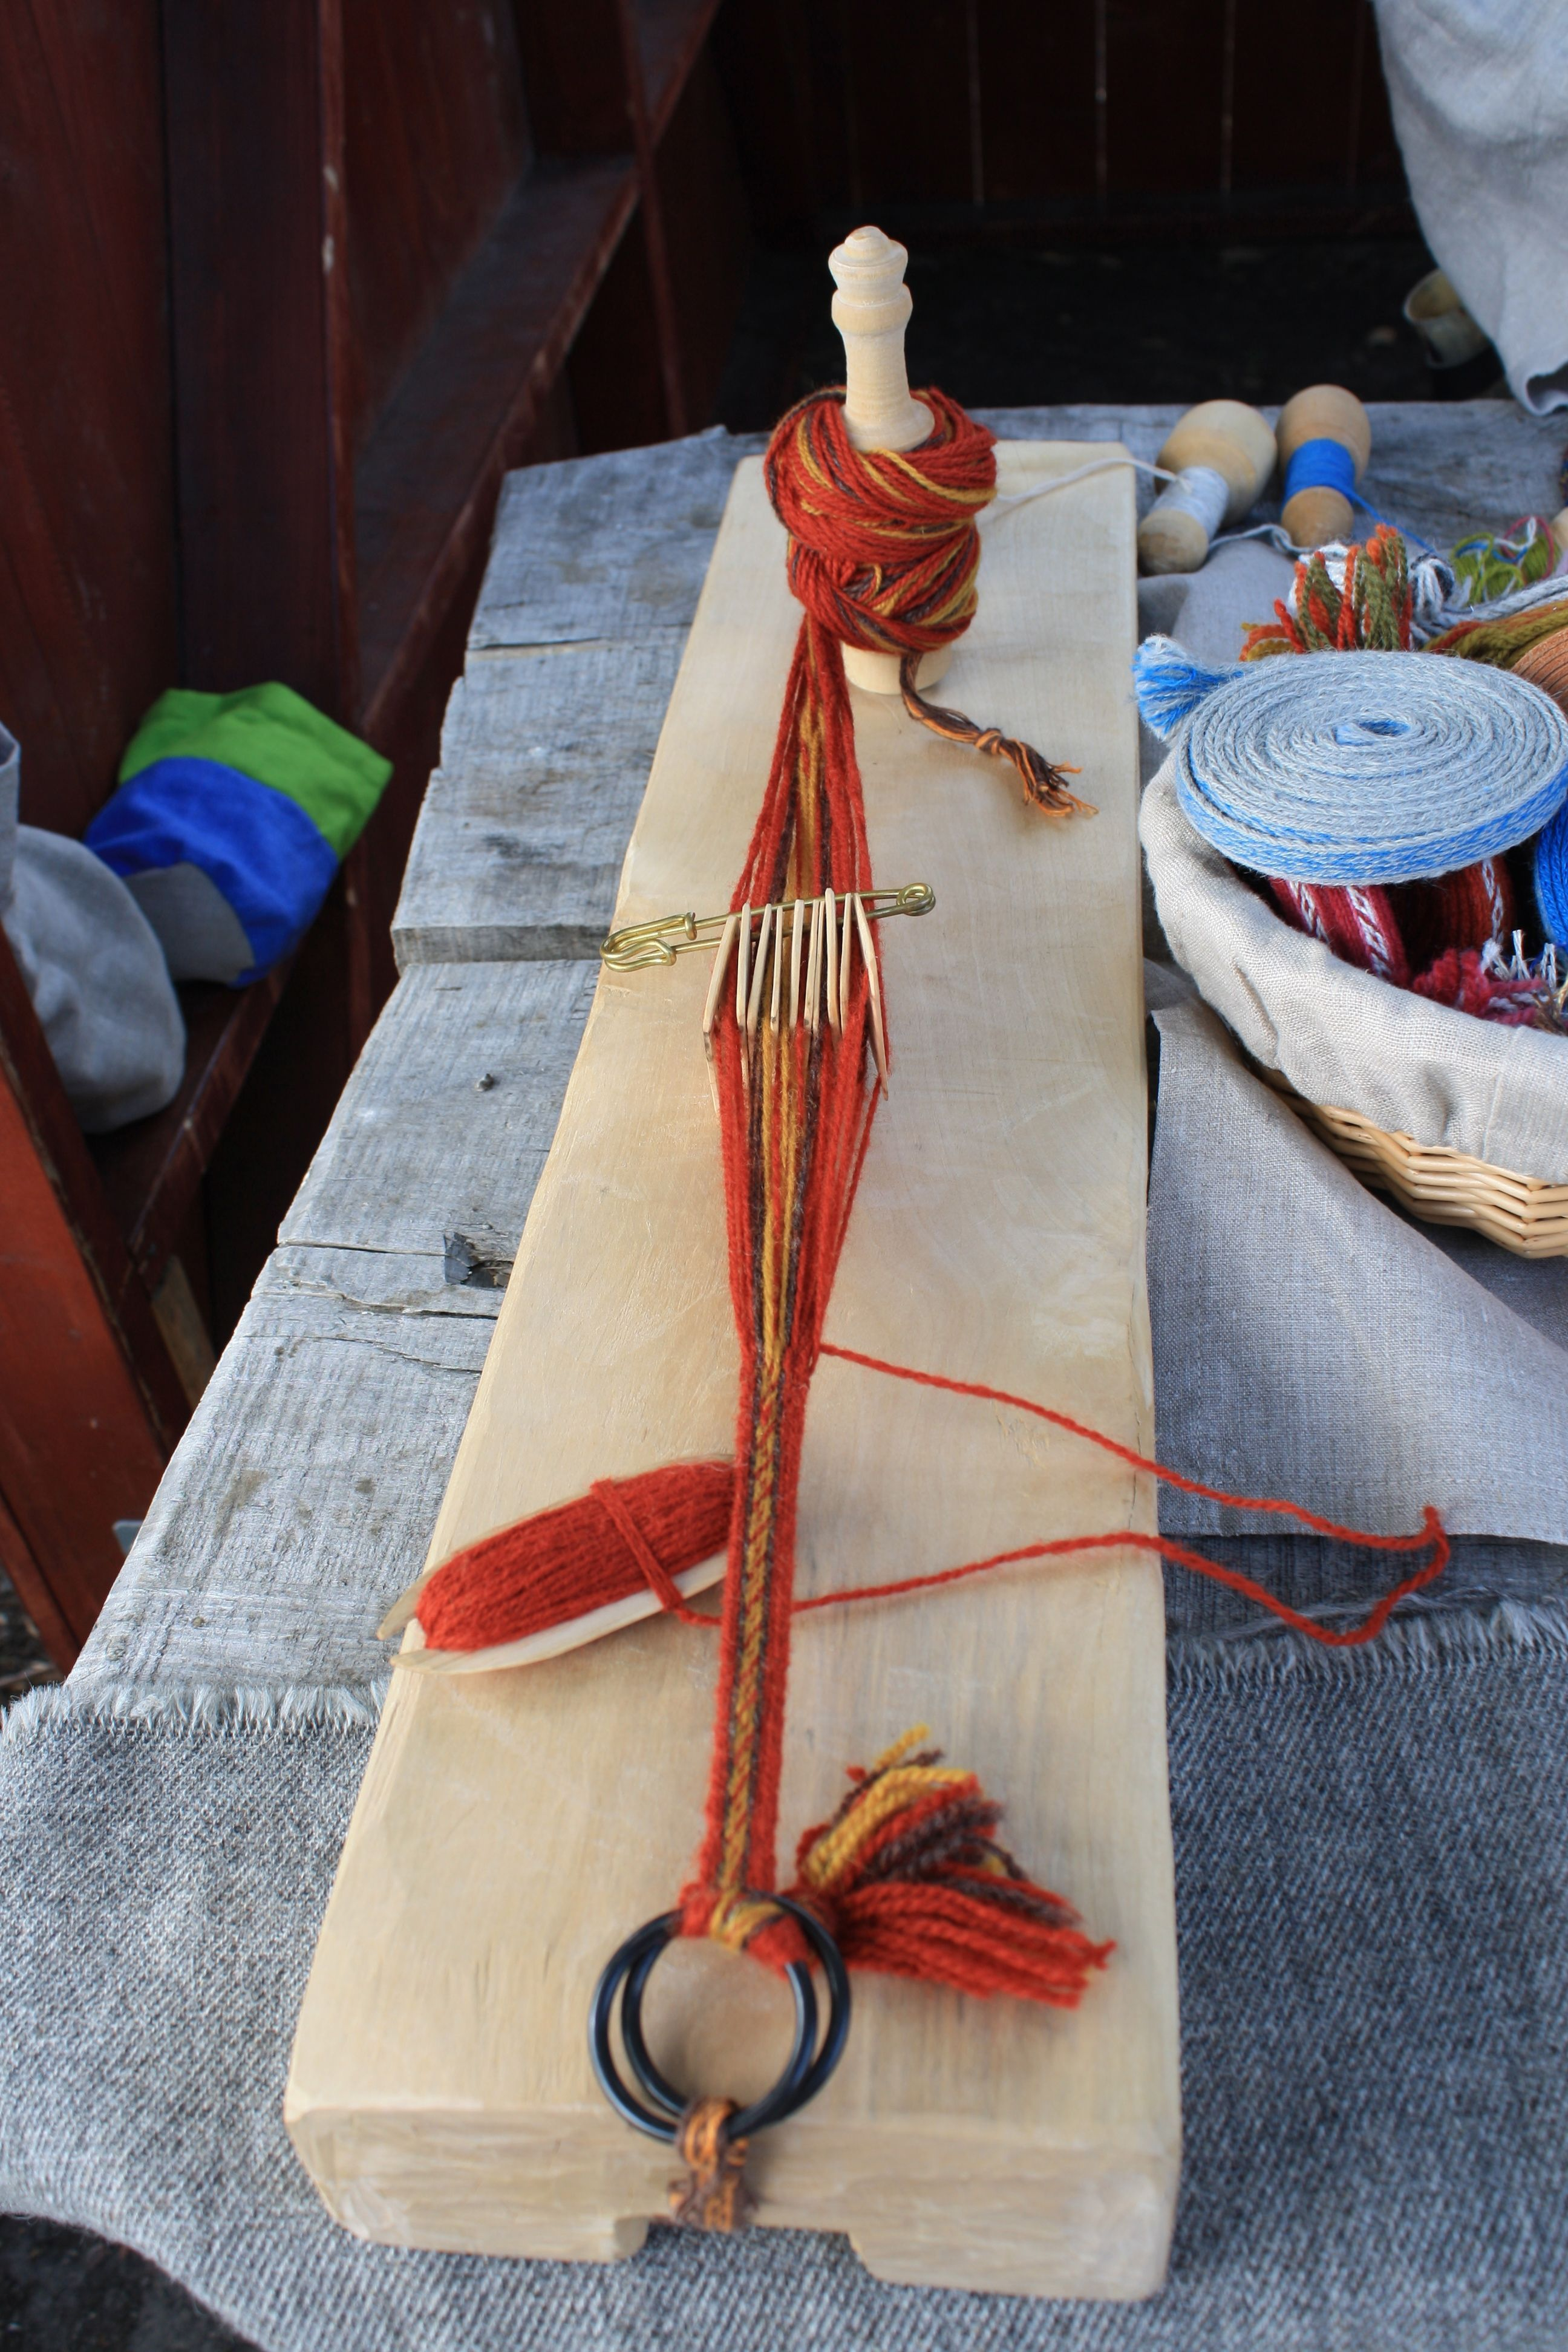 old fashioned weaving loom Repinned by Elizabeth VanBuskirk. Here is a simple loom that could be used in class for card weaving.